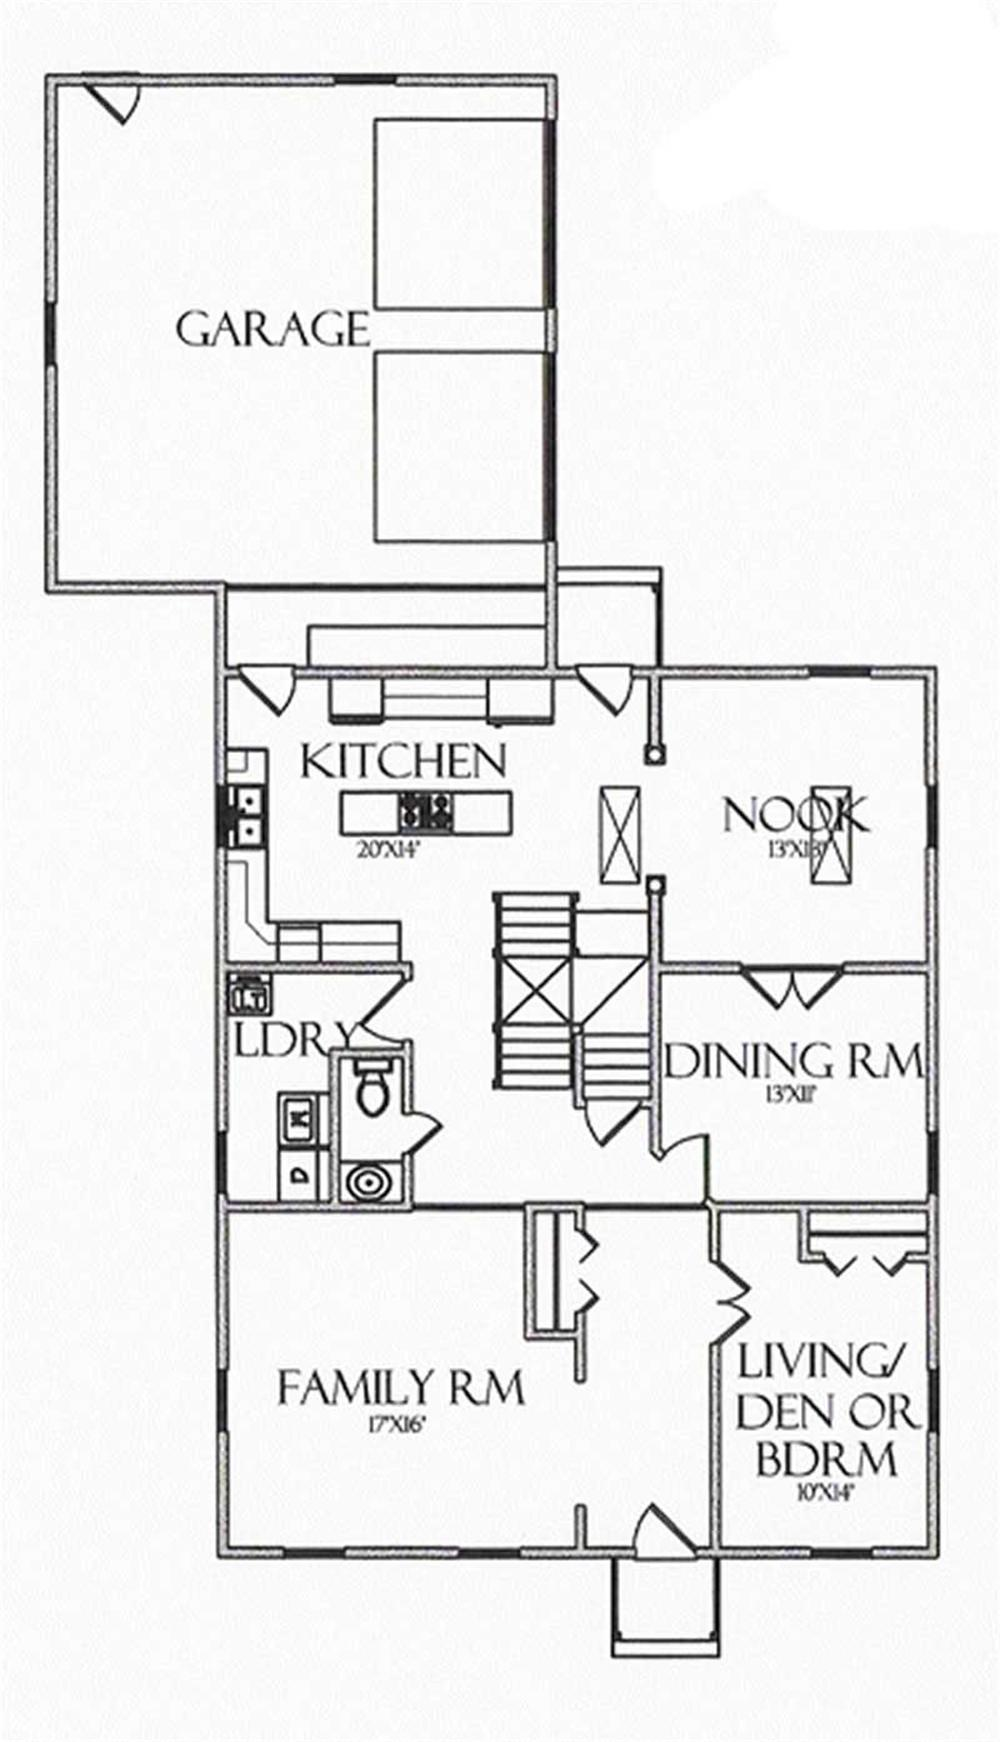 House Plan CR-503 Main Floor Plan